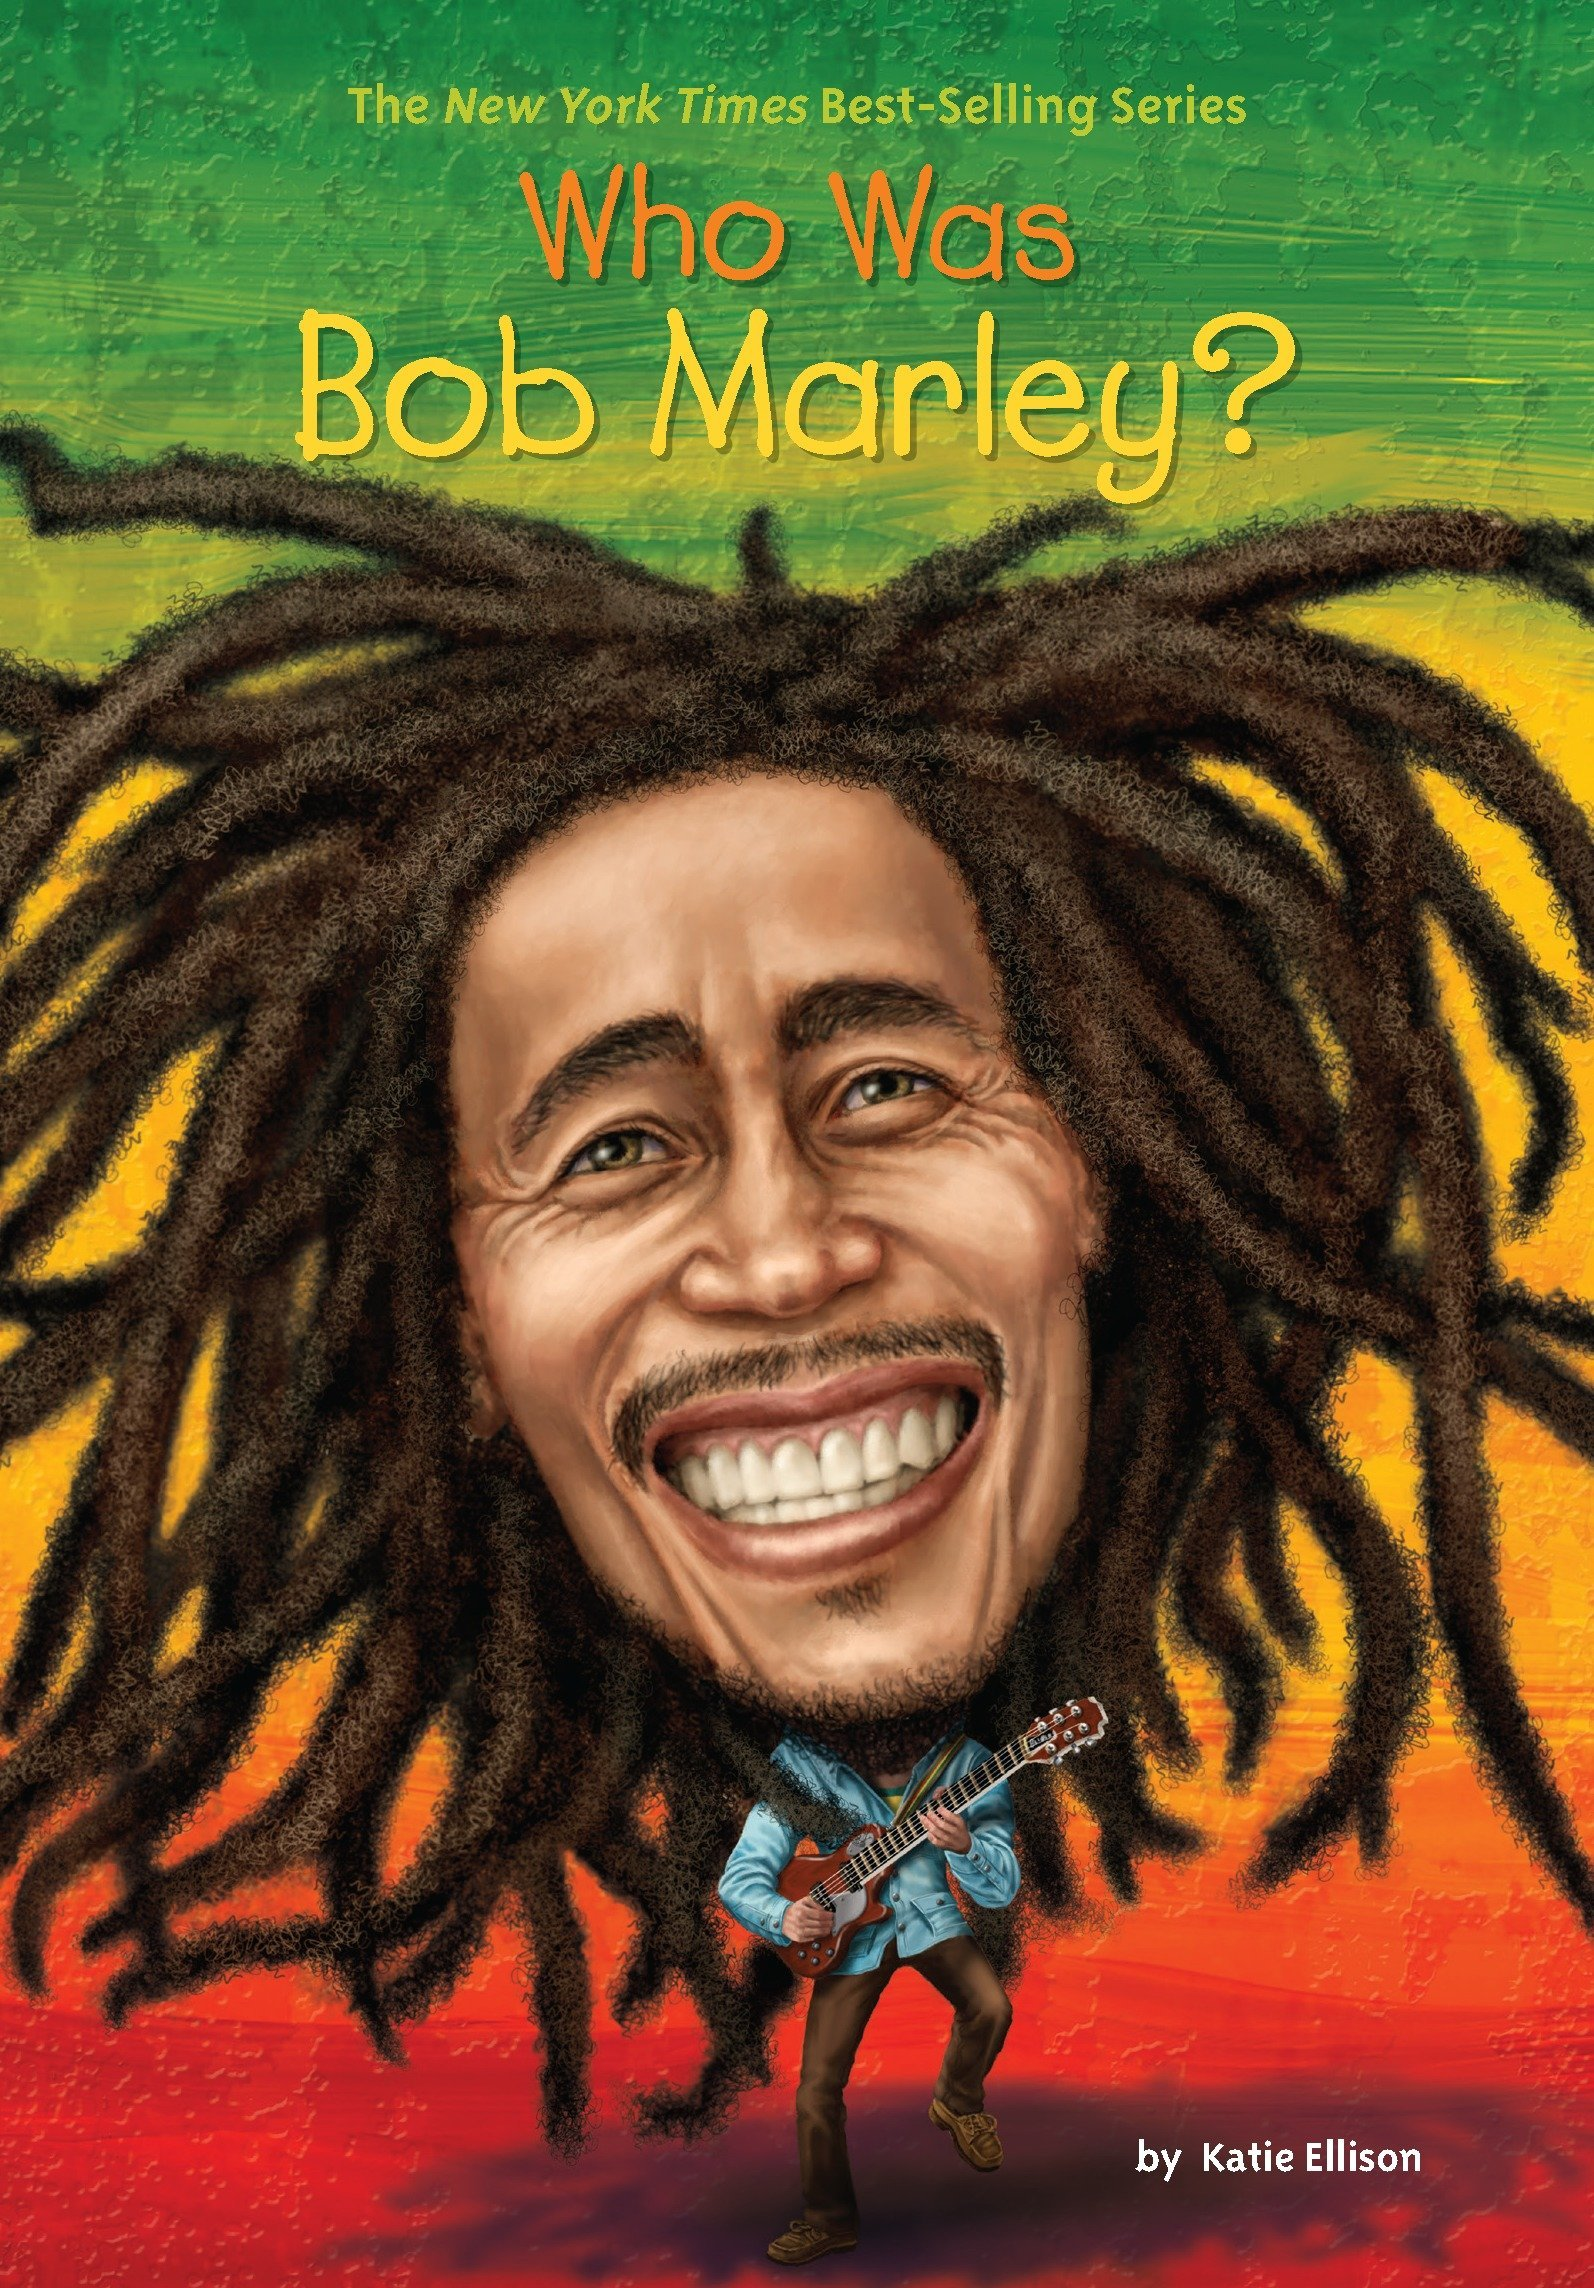 Bob of pictures marley